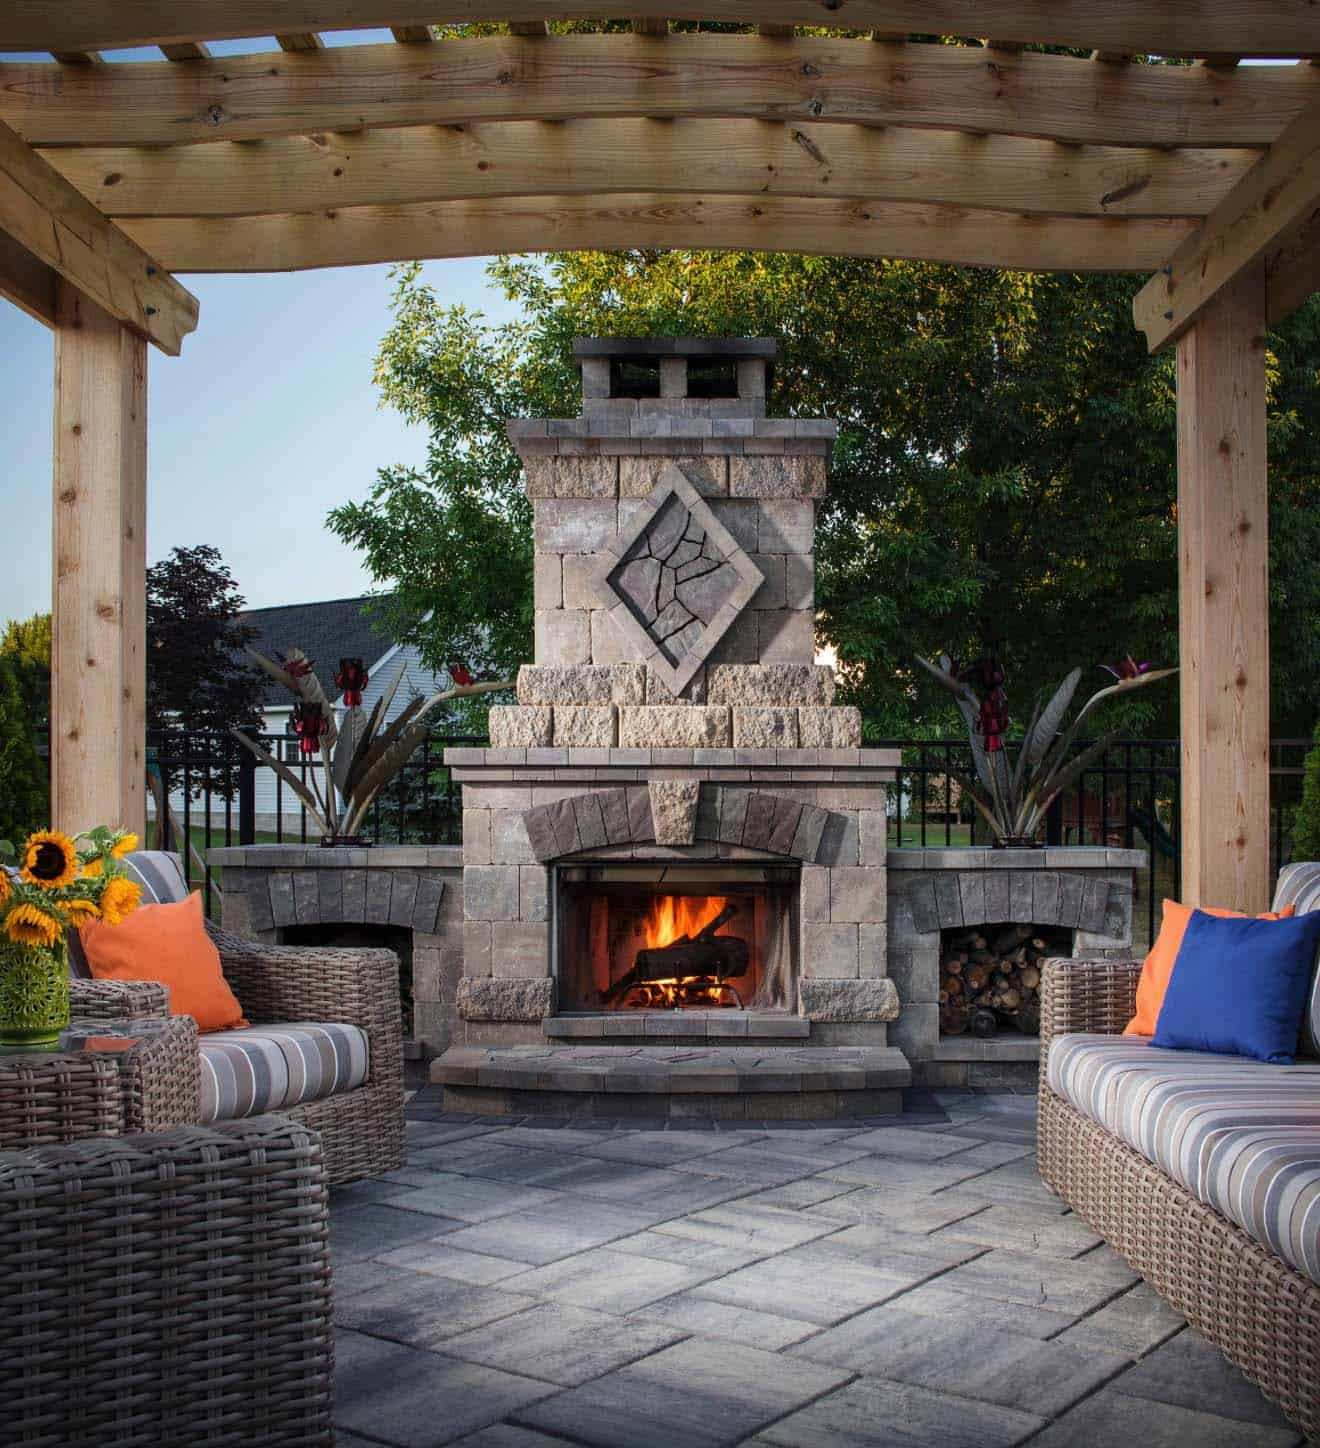 30+ Irresistible outdoor fireplace ideas that will leave ... on Outdoor Fireplaces Ideas  id=15878